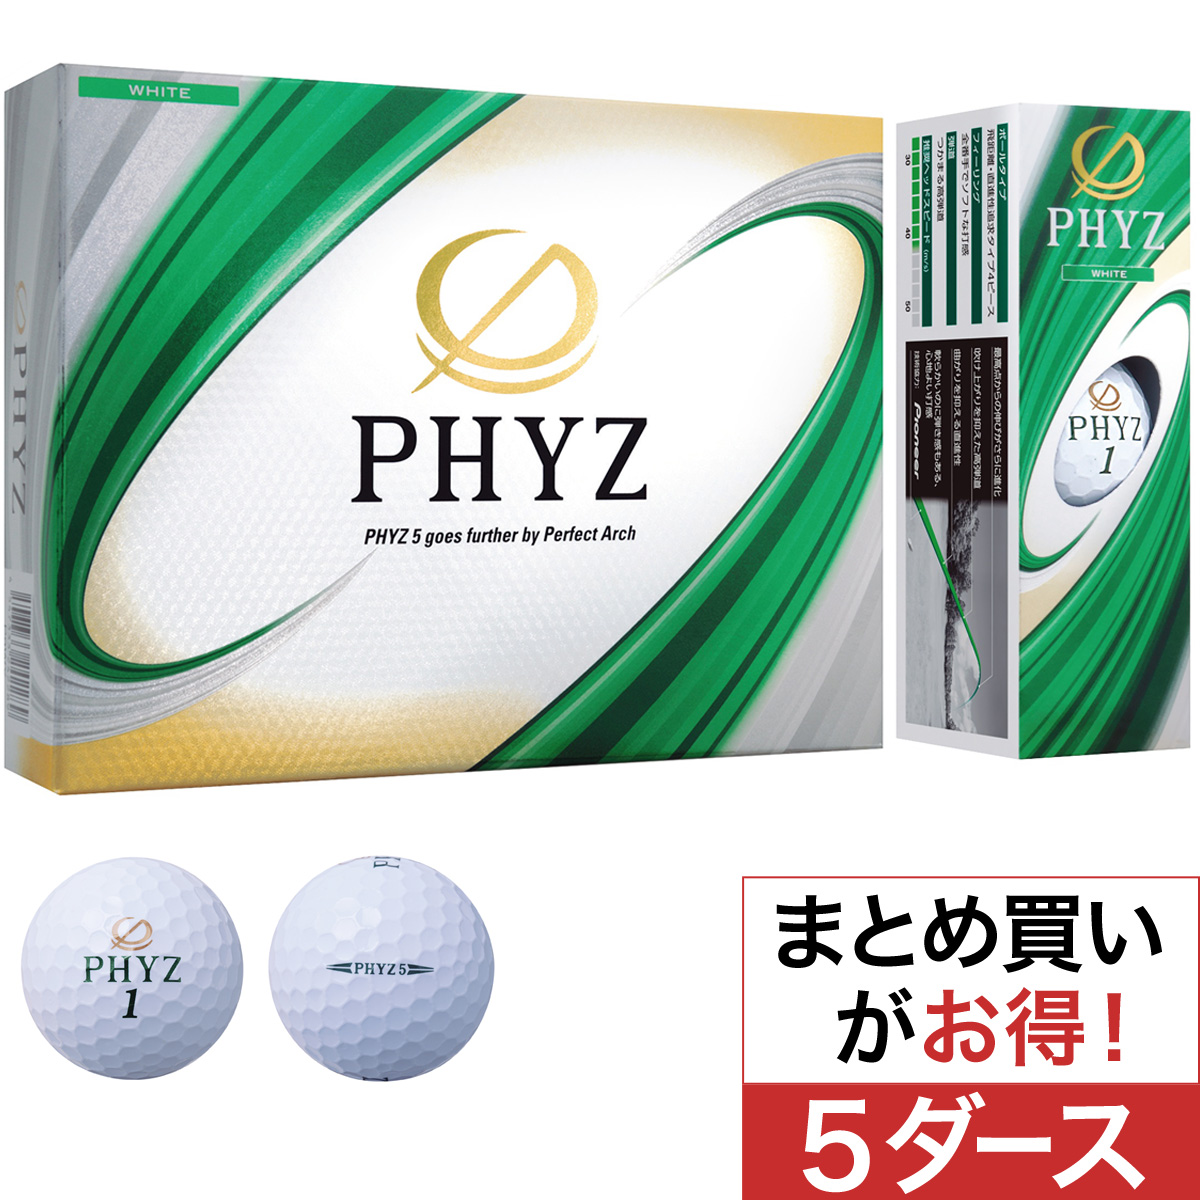 PHYZ ボール 5ダースセット